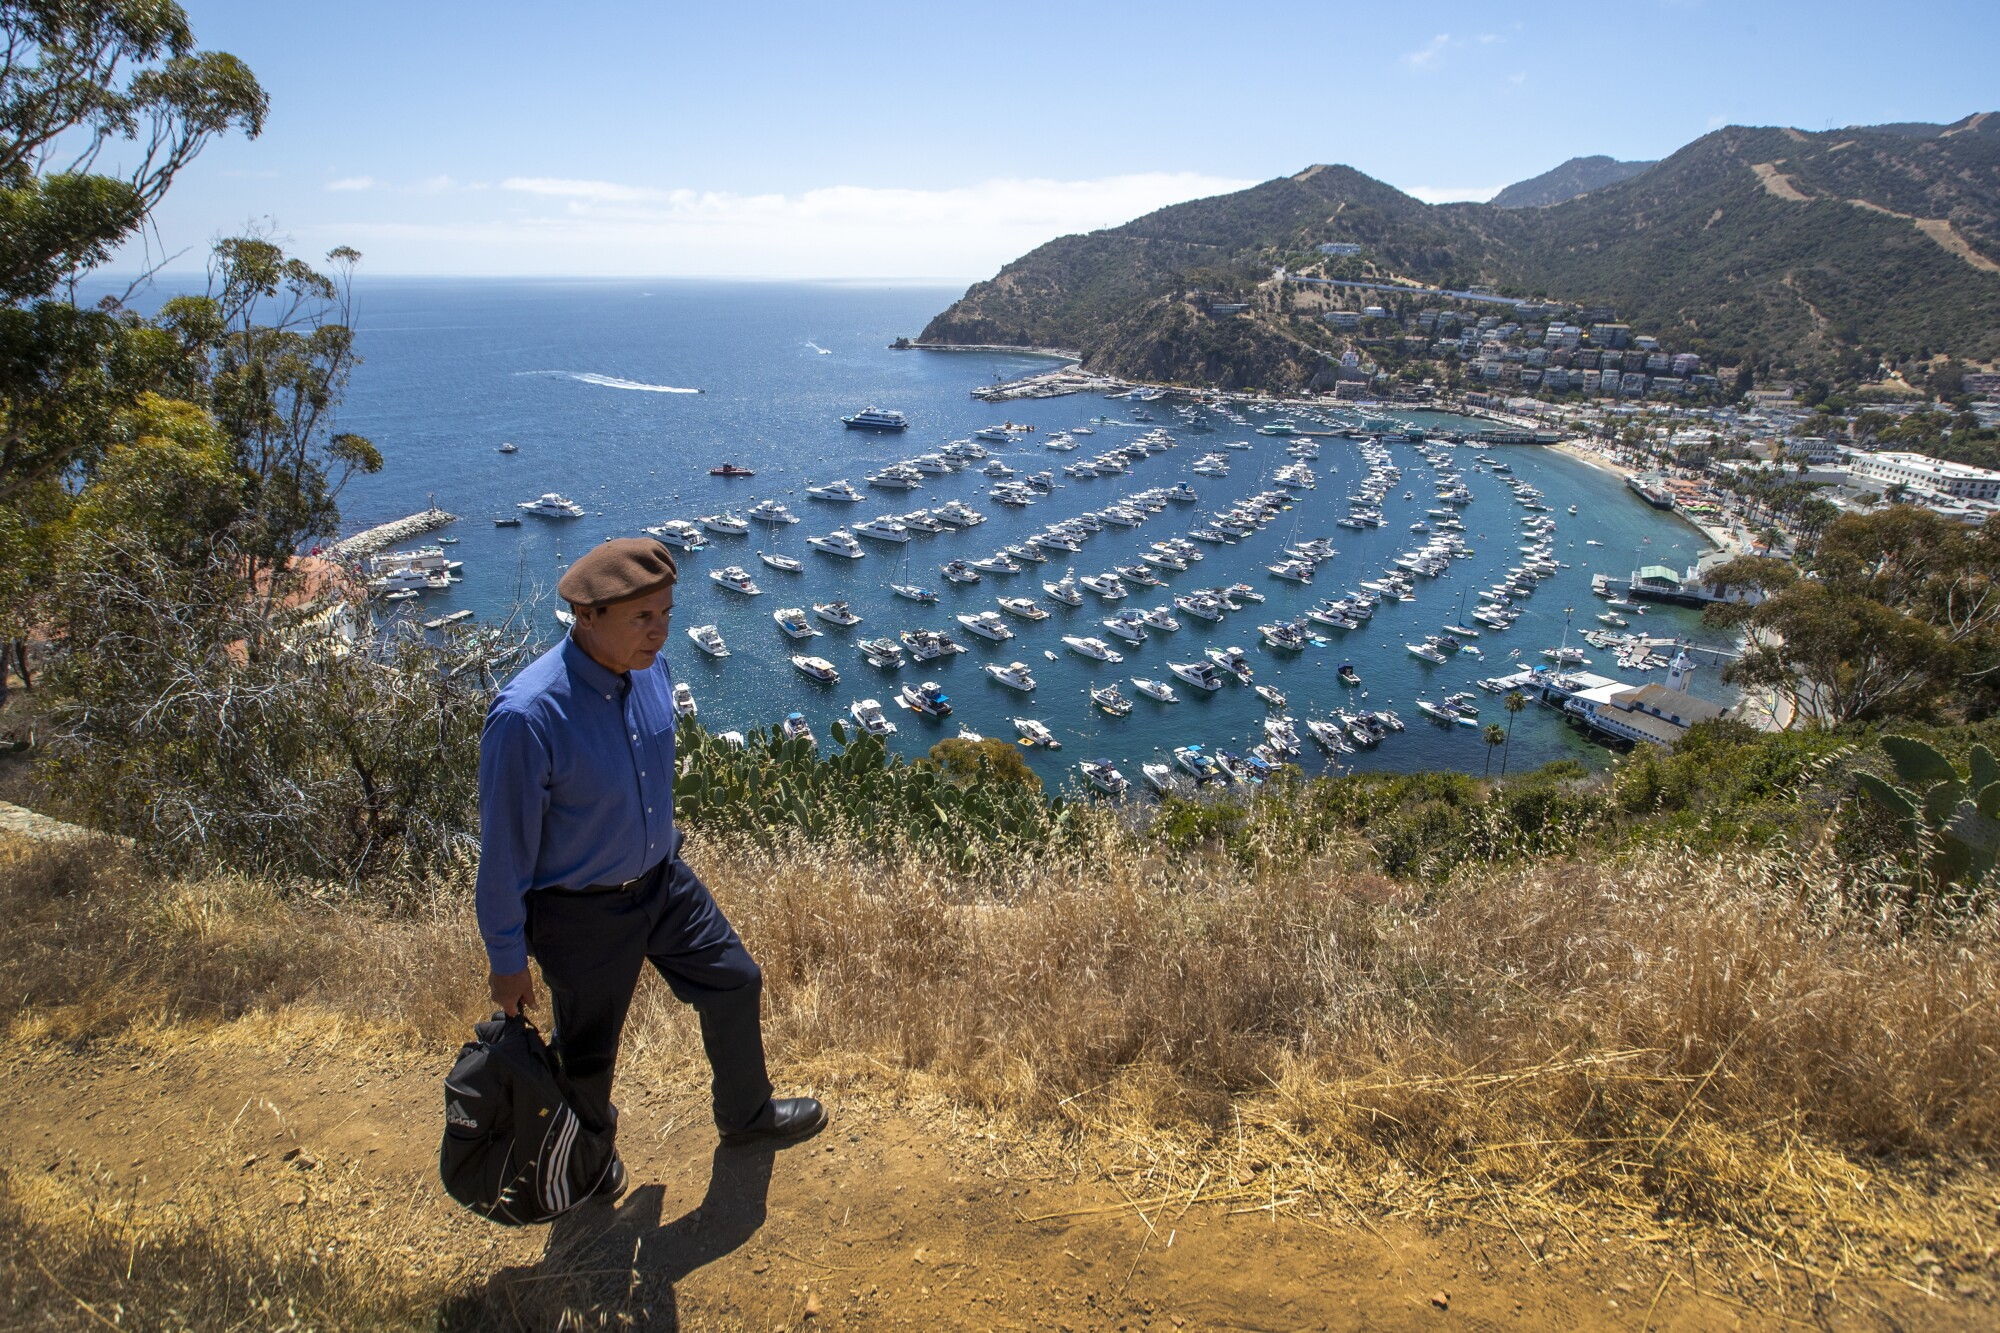 Chicano activist David Sanchez, wearing the signature brown beret, hikes on Catalina Island to the site of 1972 protest camp